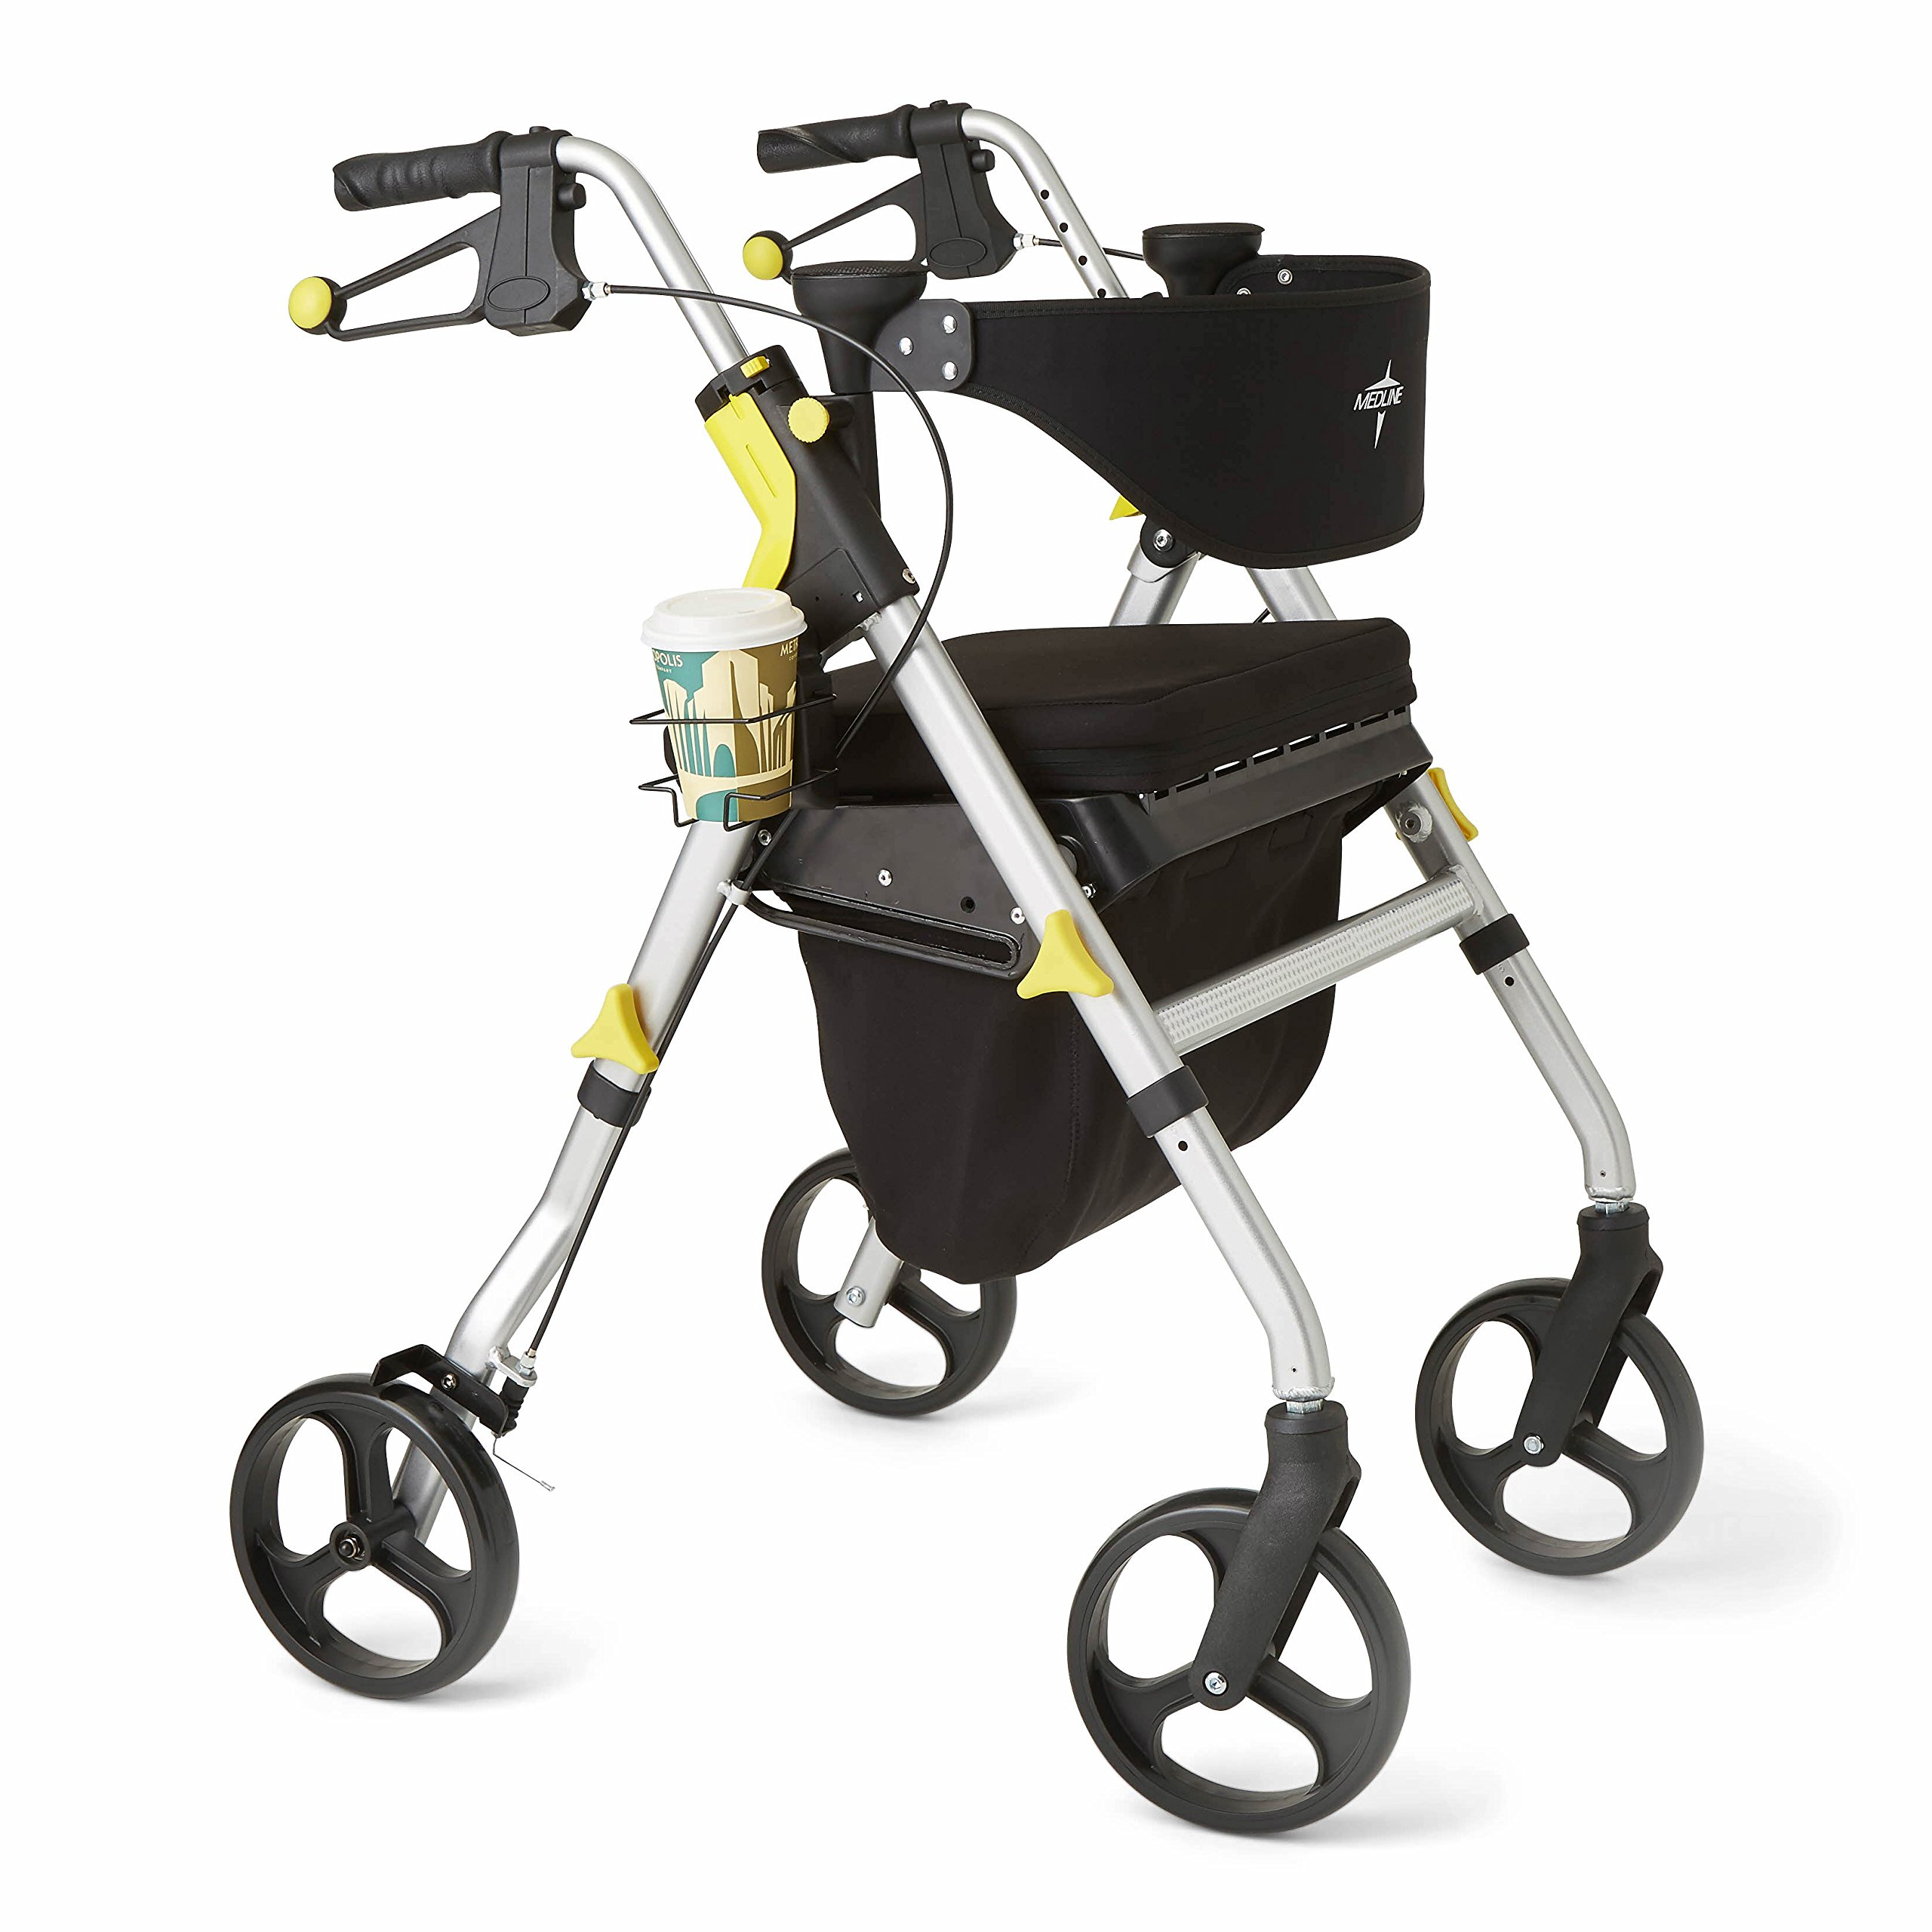 Medline Premium Empower Folding Rollator Mobility Walker with 8-inch Wheels, Silver